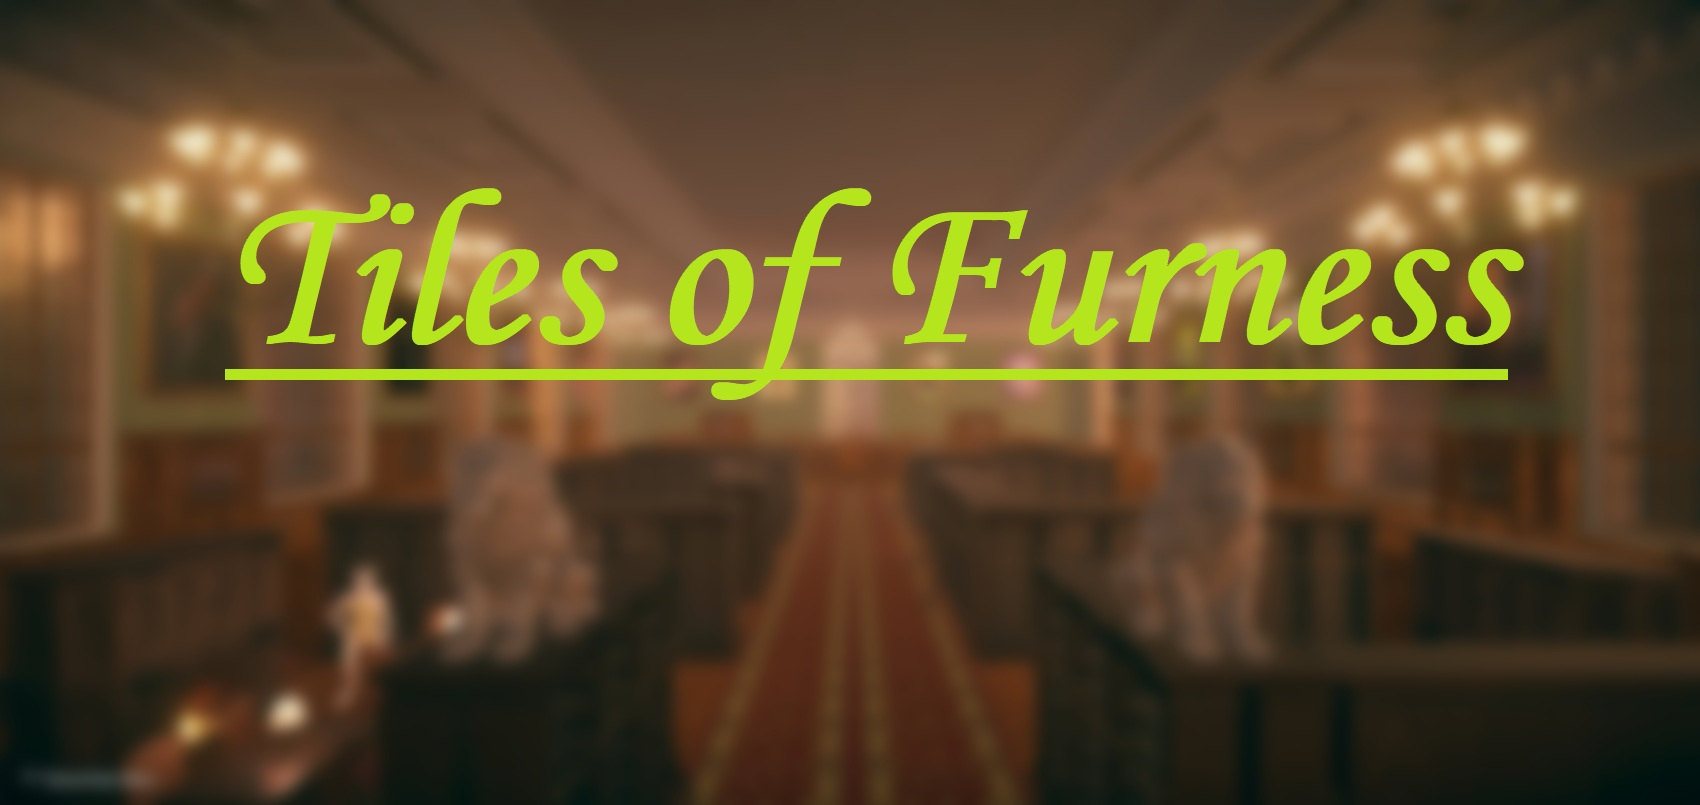 Tiles of Furness (18+)